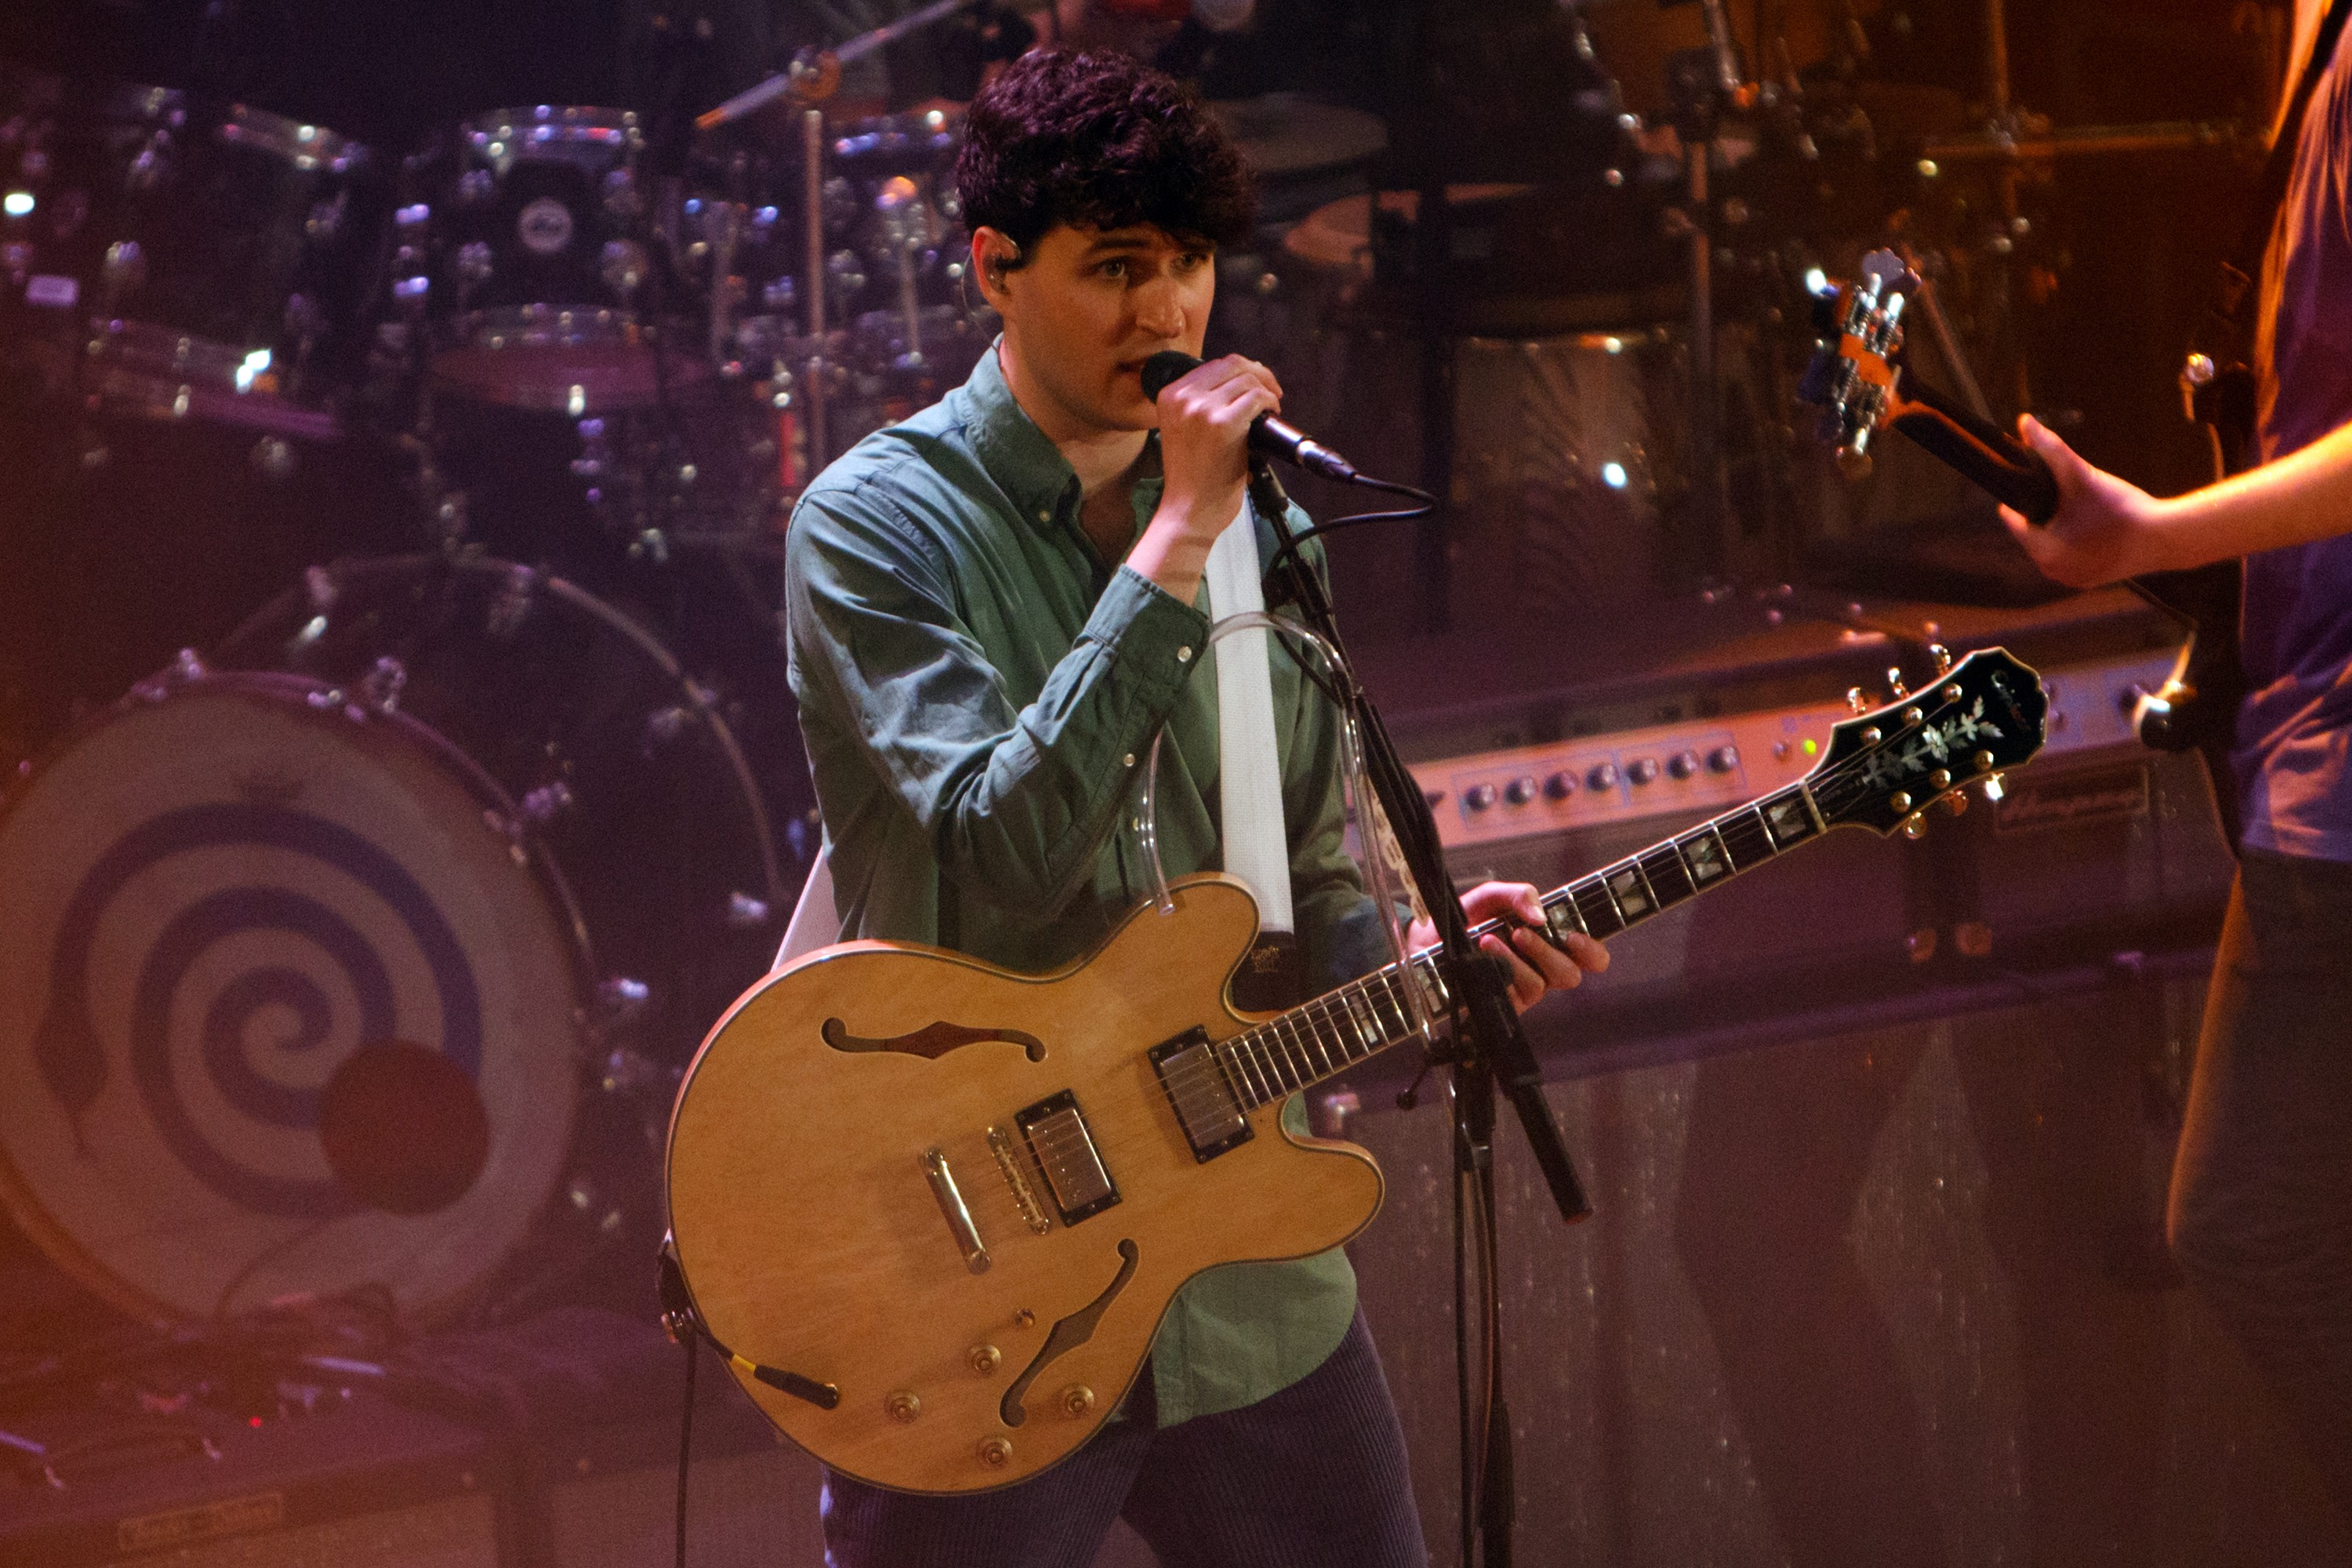 vampire-weekend-ezra-koenig-talks-preppiness-cultural-appropriation-and-rocks-fading-influence-in-new-interview